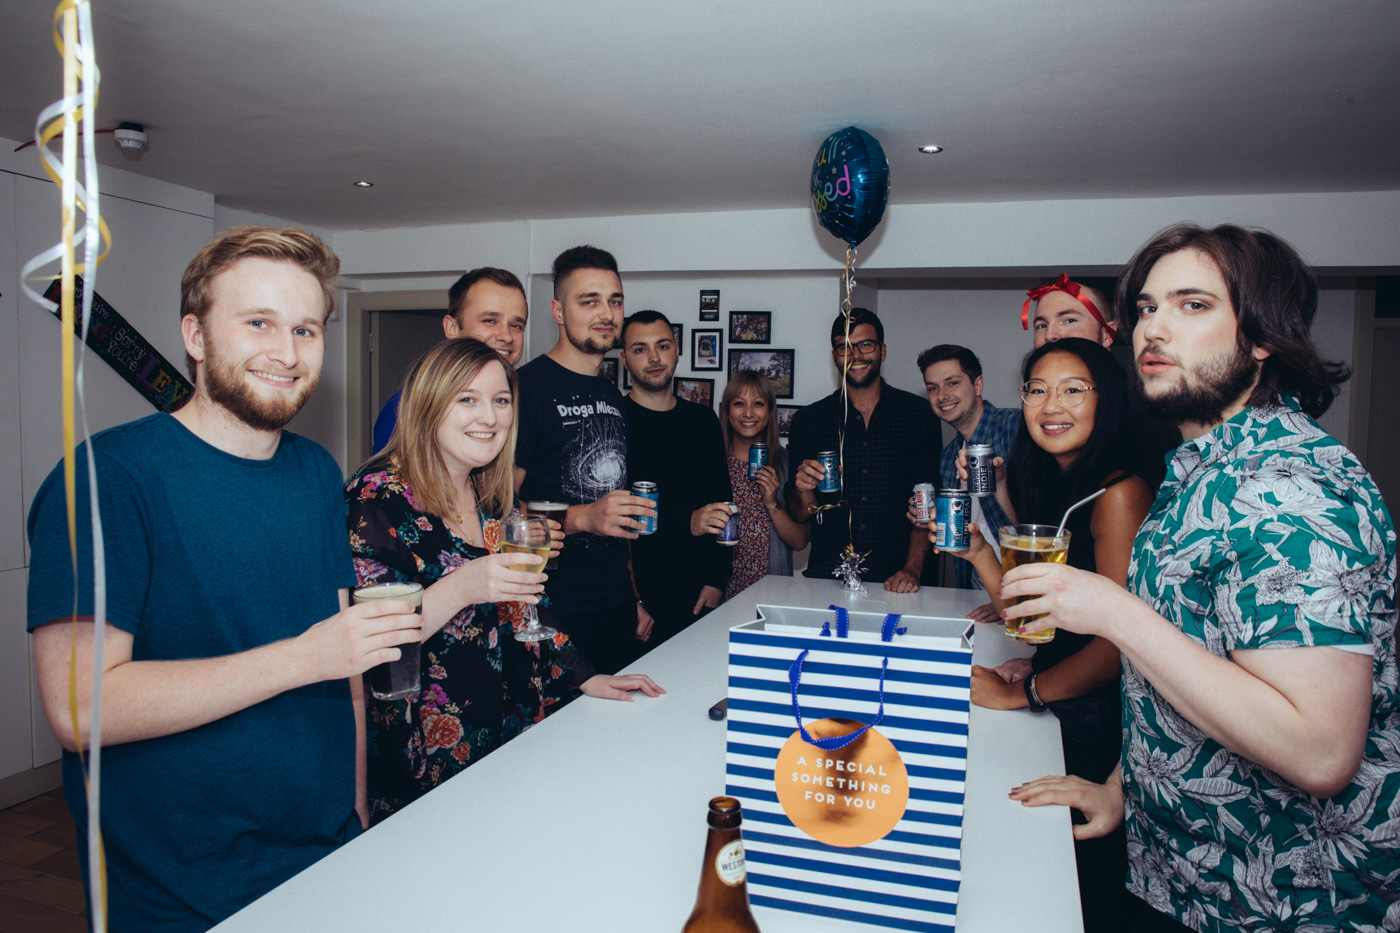 GearedApp Turns 7! A Peek Into How We've Grown Our 'Little-Big Family' Company Culture